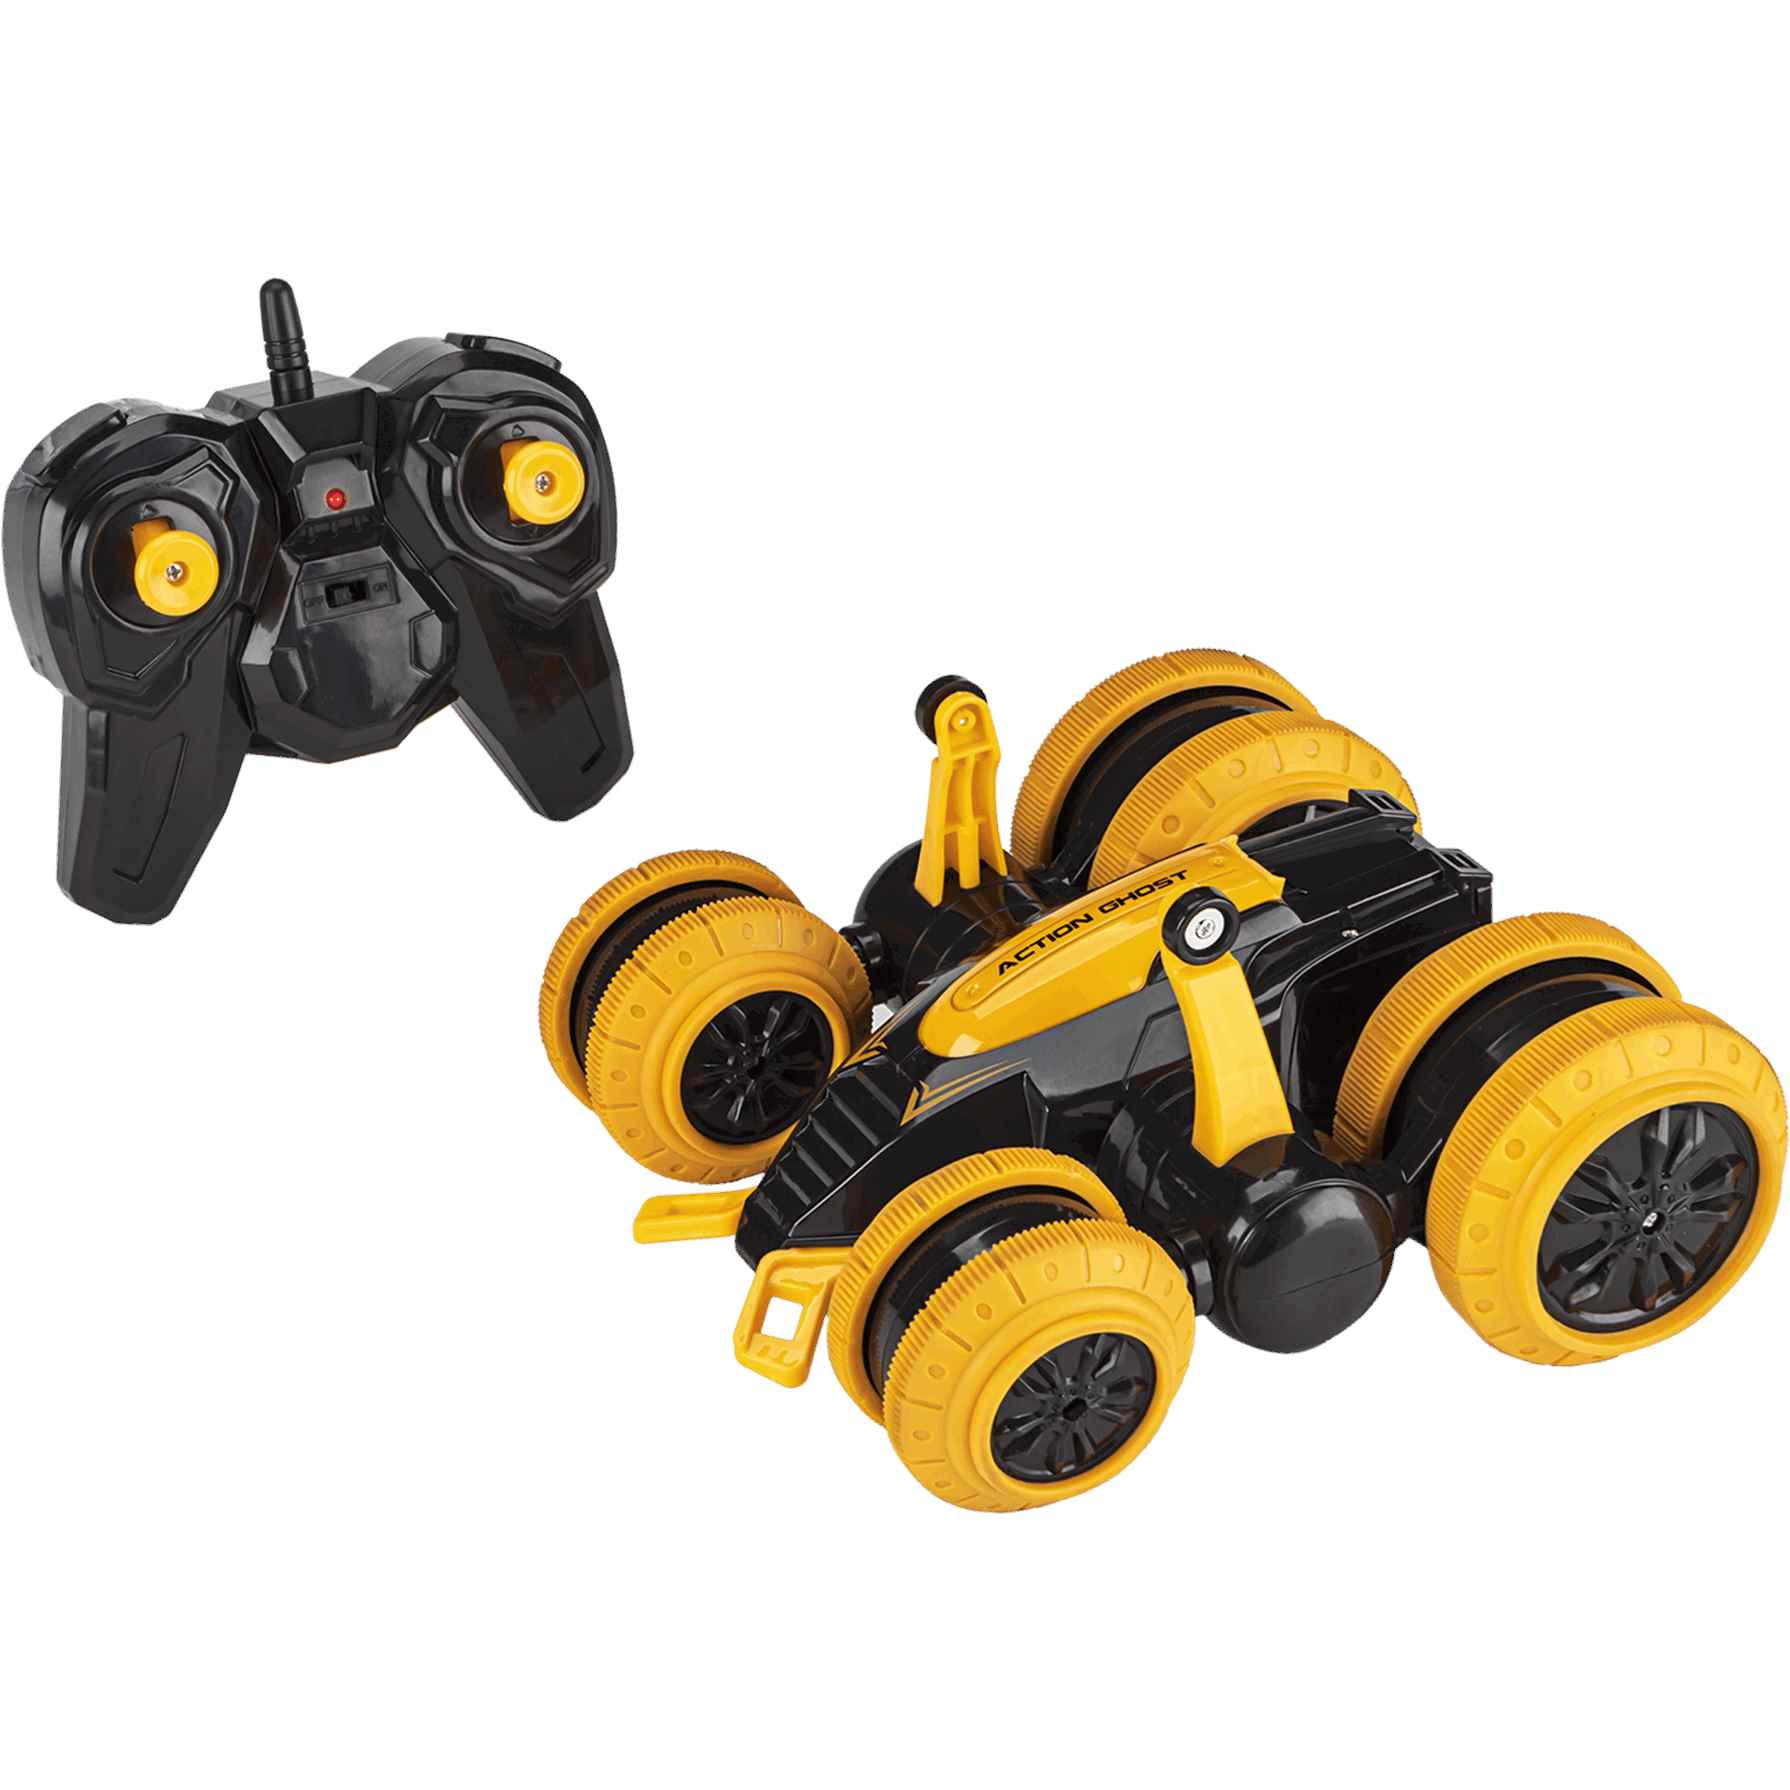 Motor Planet Rc Hover Stunt Storm